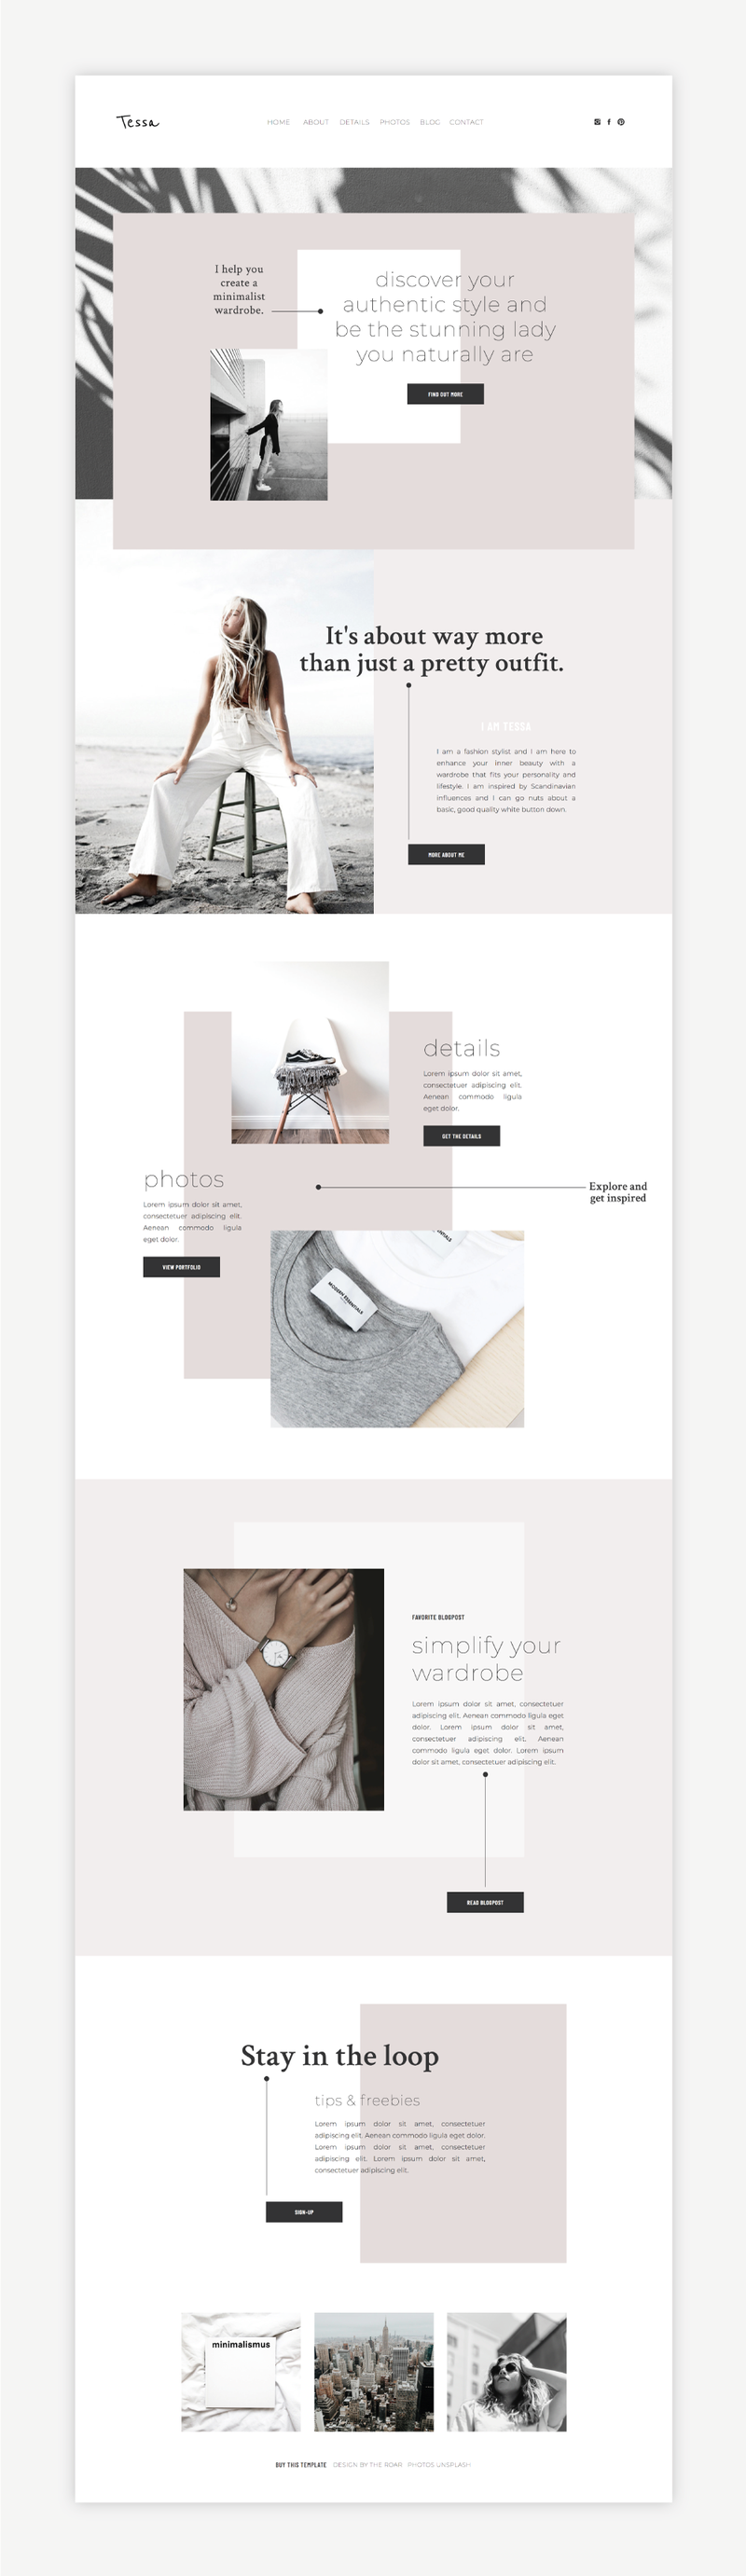 The Roar Showit Web Design Website Template Tessa Shop Image Full